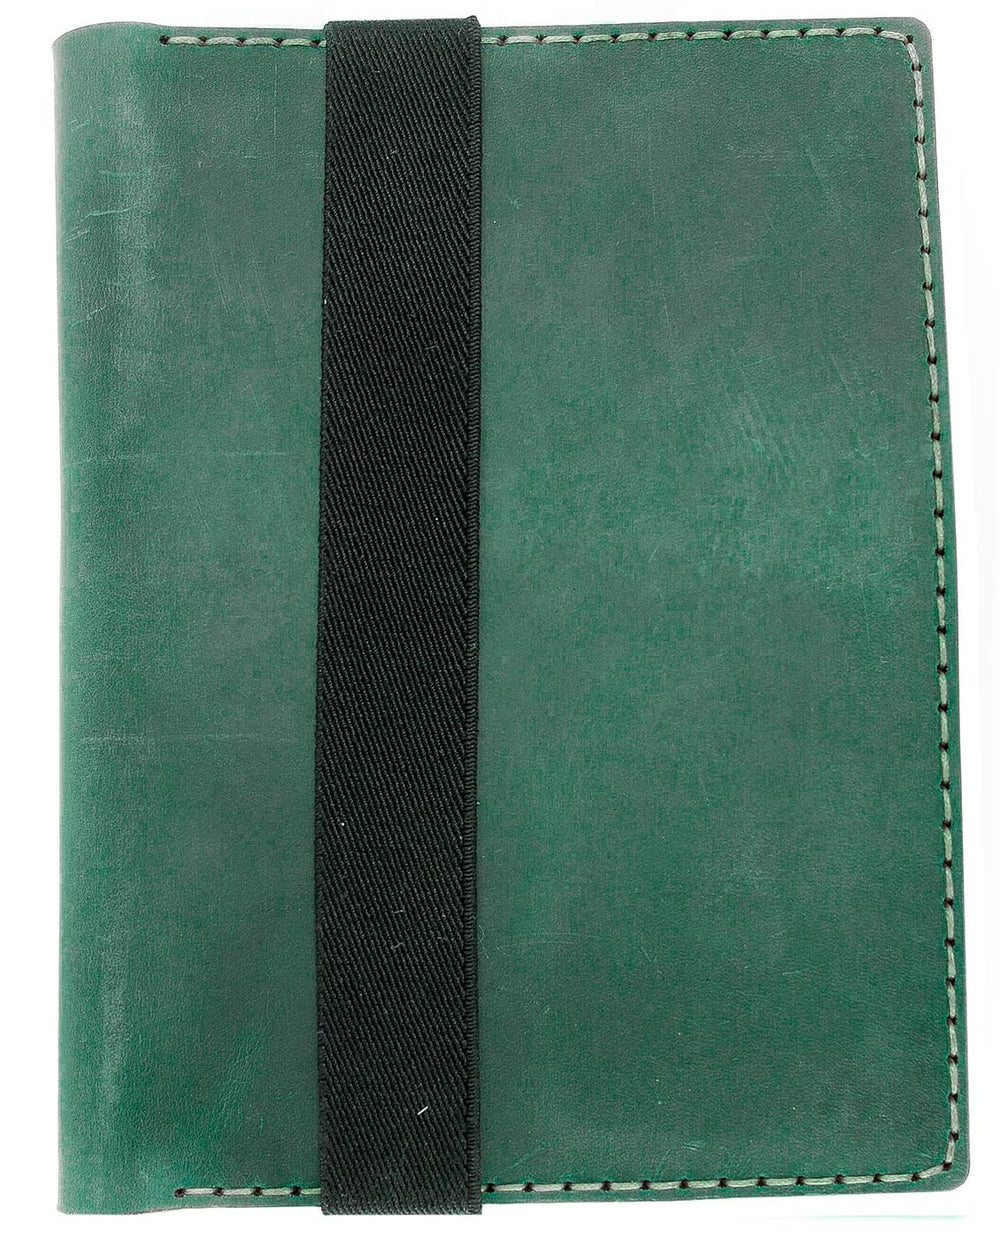 Galen Leather Co. Leather Hobonichi Cousin A5 Planner Cover- Crazy Horse Forest Green